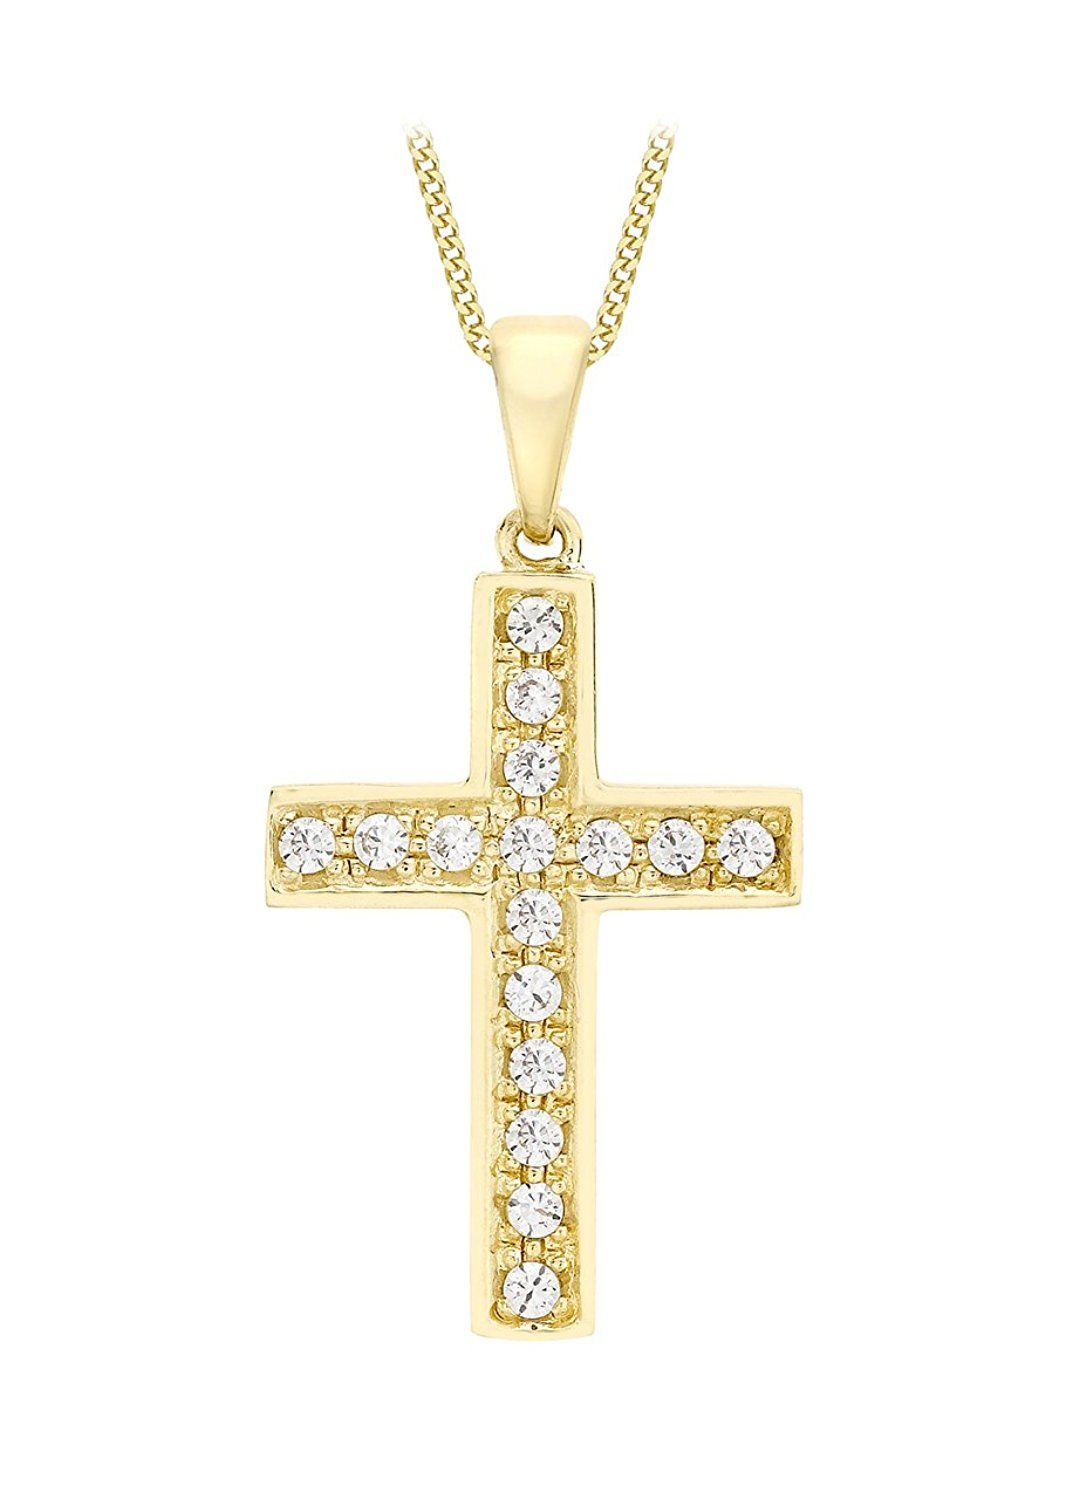 Carissima Gold Women's 9 ct Yellow Gold Cross Pendant on Curb Chain Necklace of Length 46 cm OAew1l